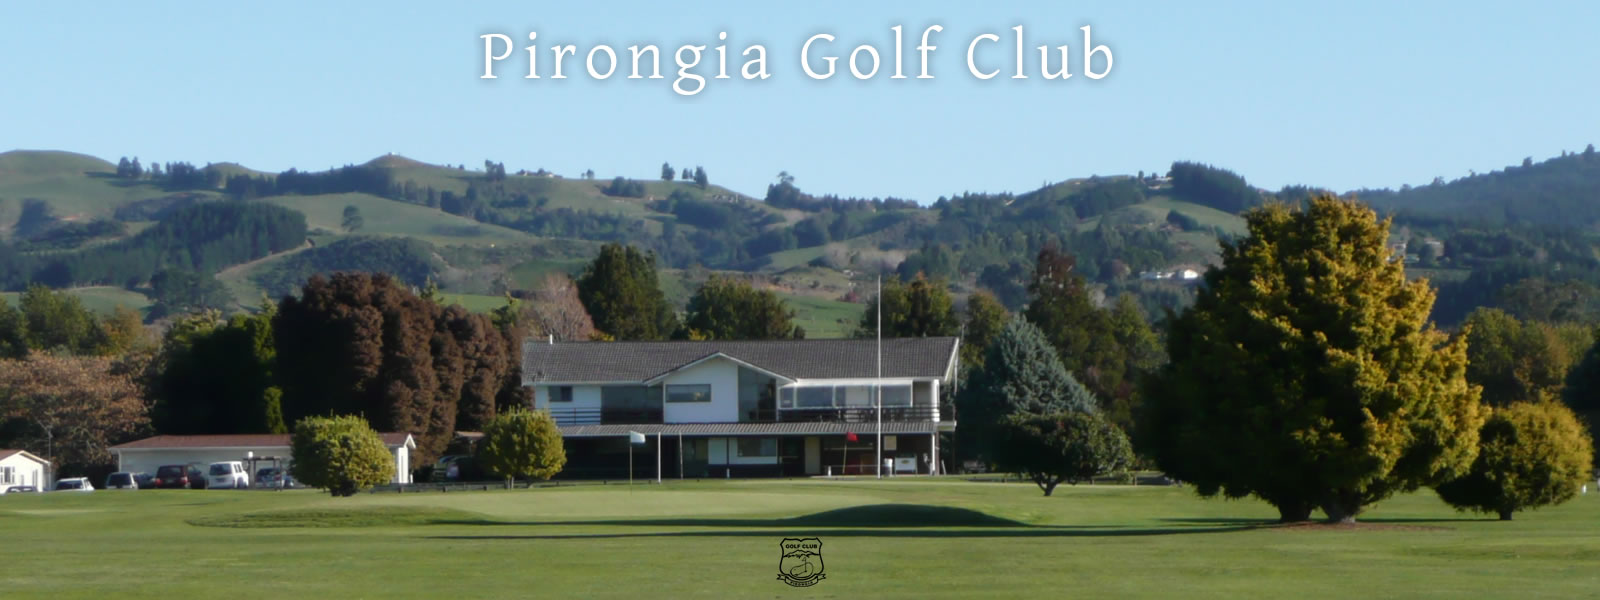 Pirongia Golf Club - a beautiful 18 hold course